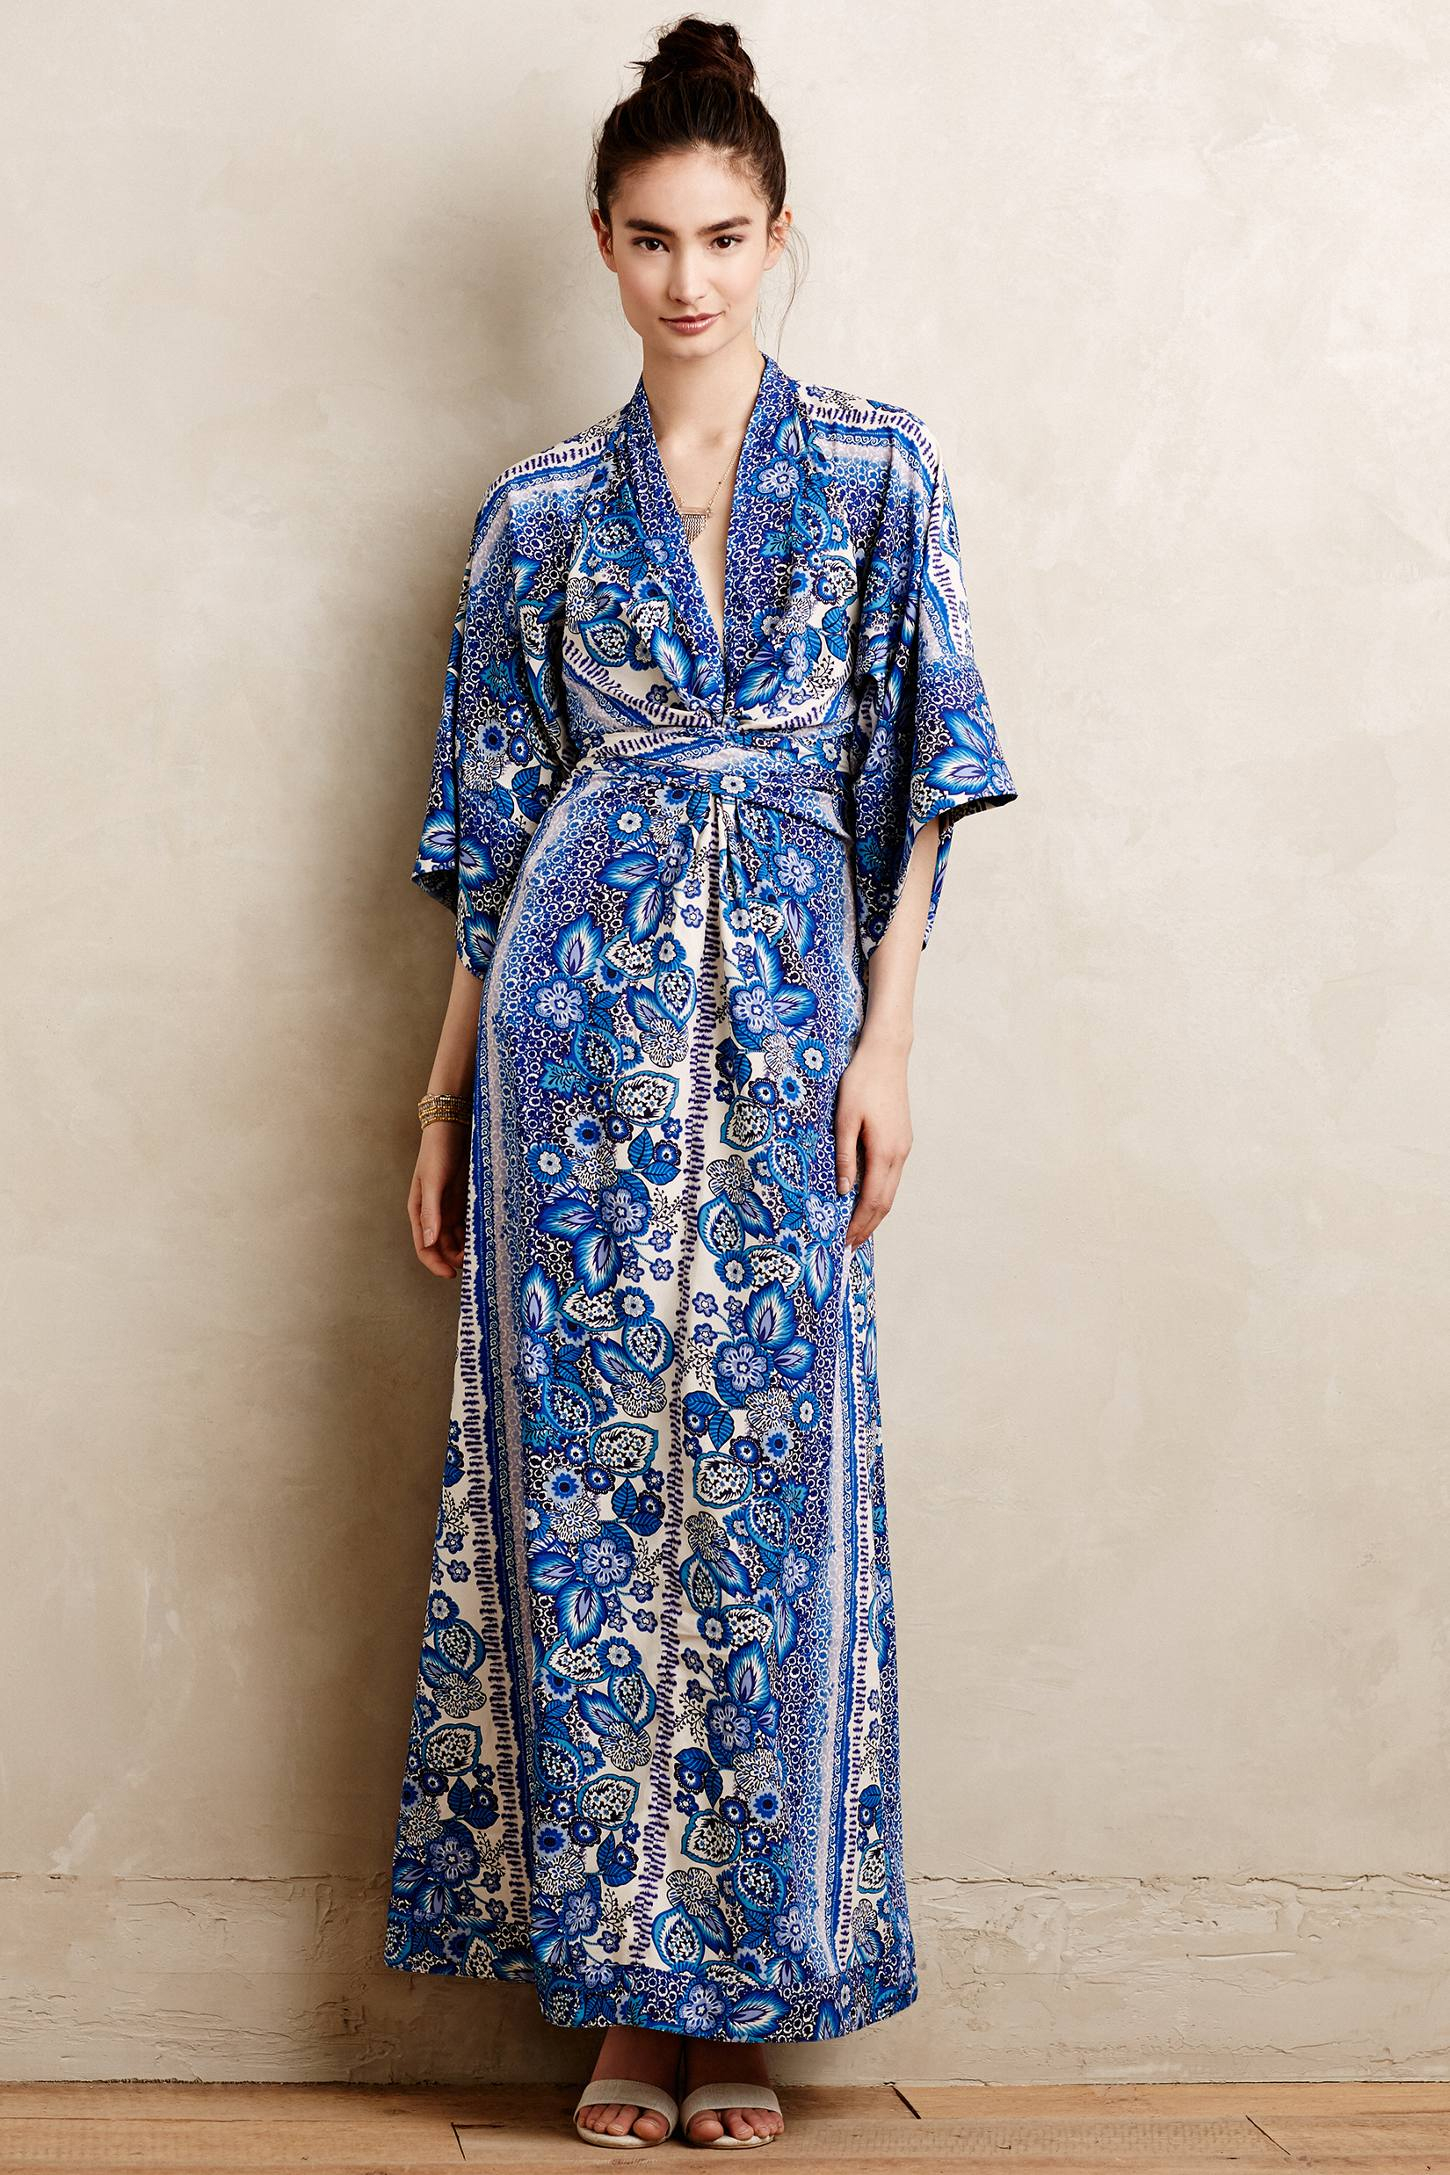 Kimono Dress. A kimono dress remains an outfit in itself. Its unique pattern and wrap style complements any woman of any body type. Whether for a dinner date or for a night on the town, a kimono dress is a polished outfit choice that looks sassy and feminine, all in one.